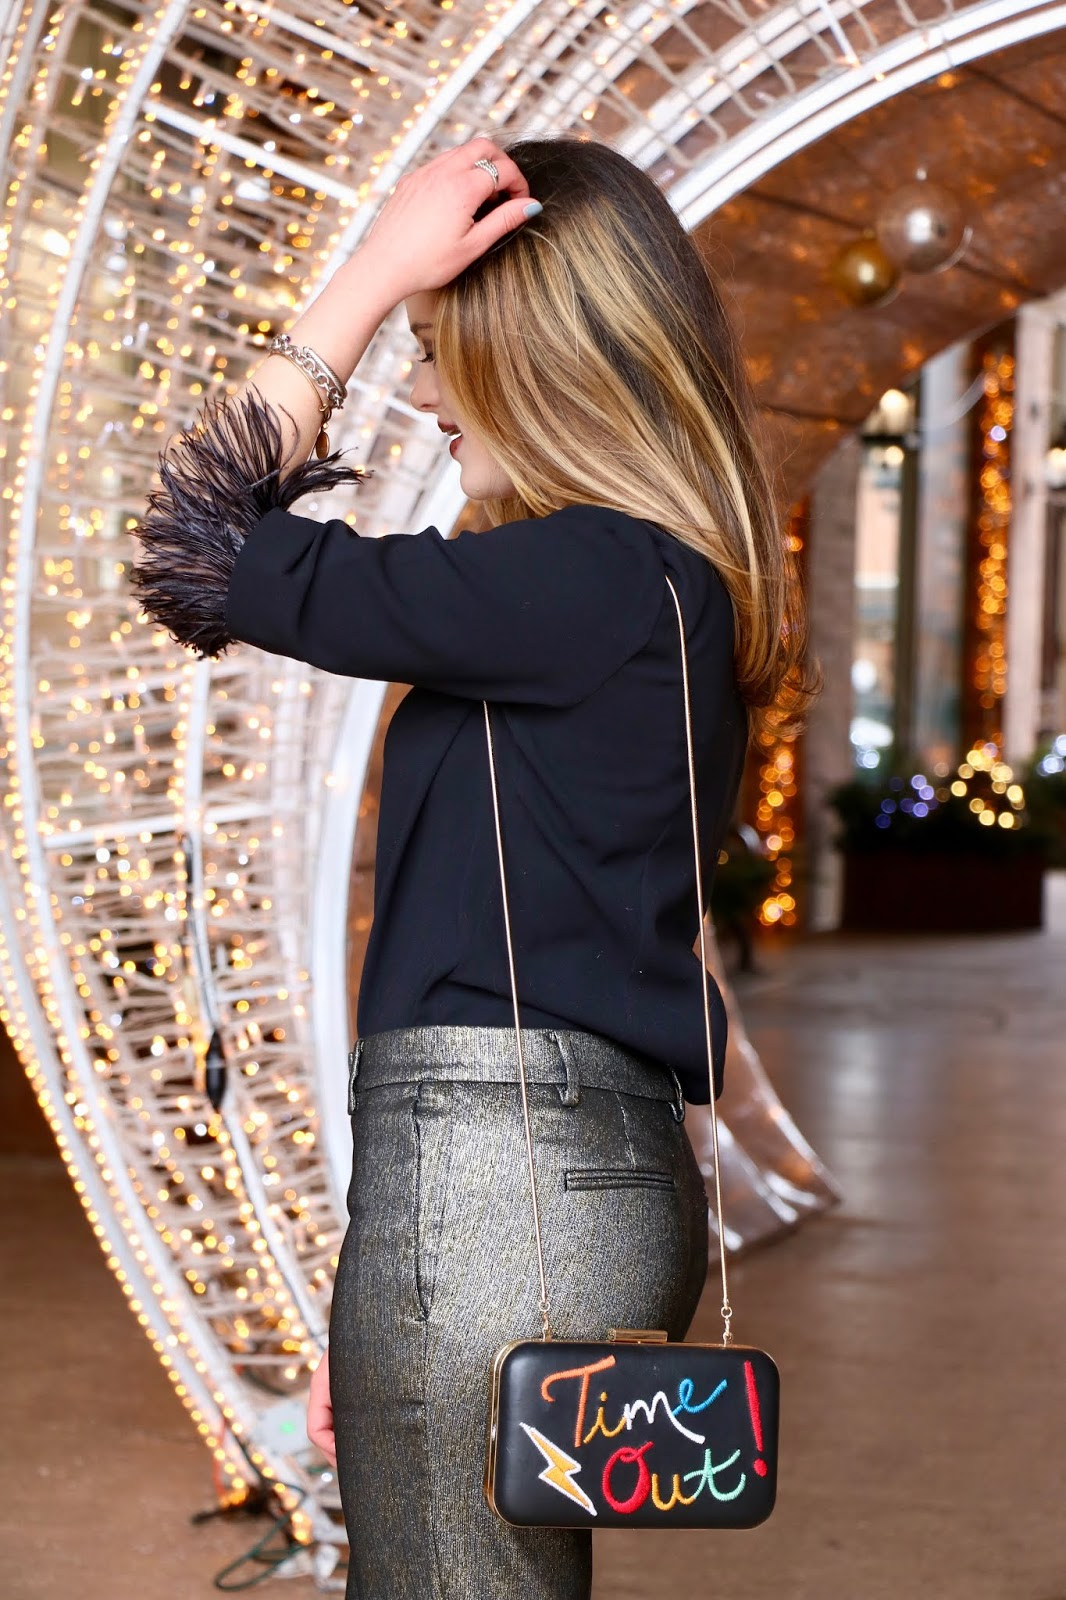 Nyc fashion blogger Kathleen Harper's New Year's Eve fashion